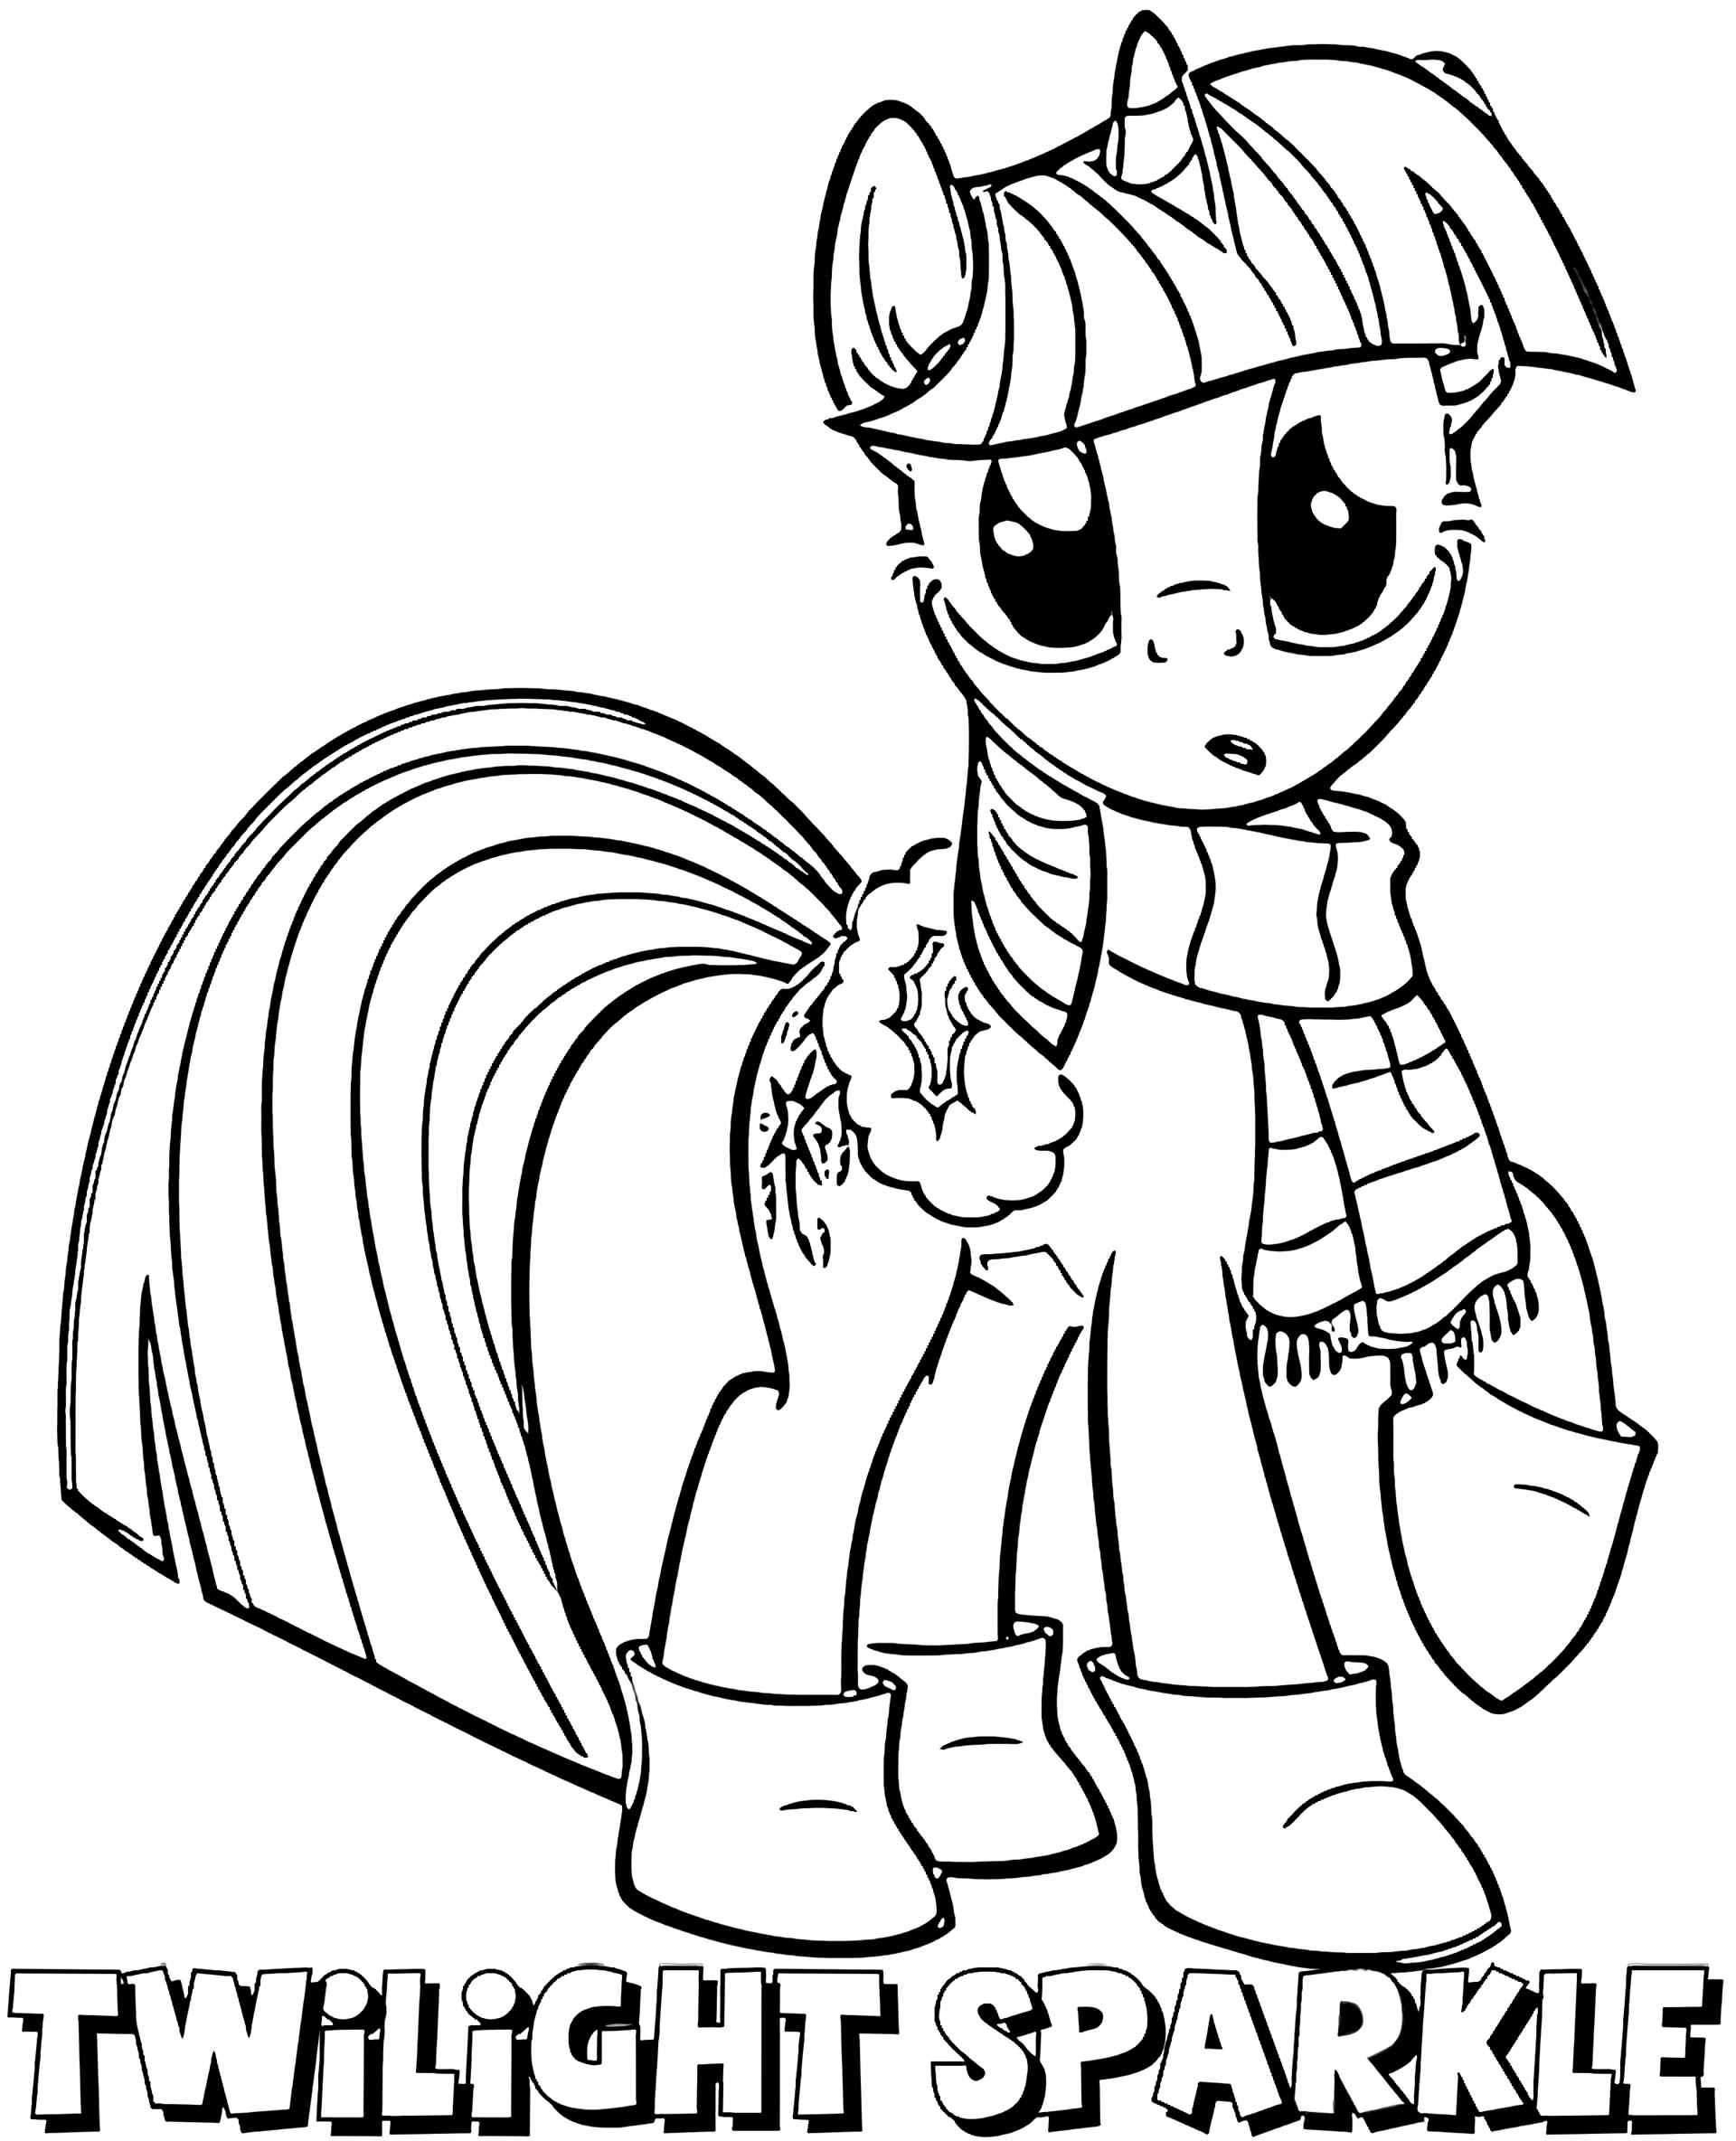 Coloring Sheet Surprised Pony Sparkle In Warm Clothes With A Name